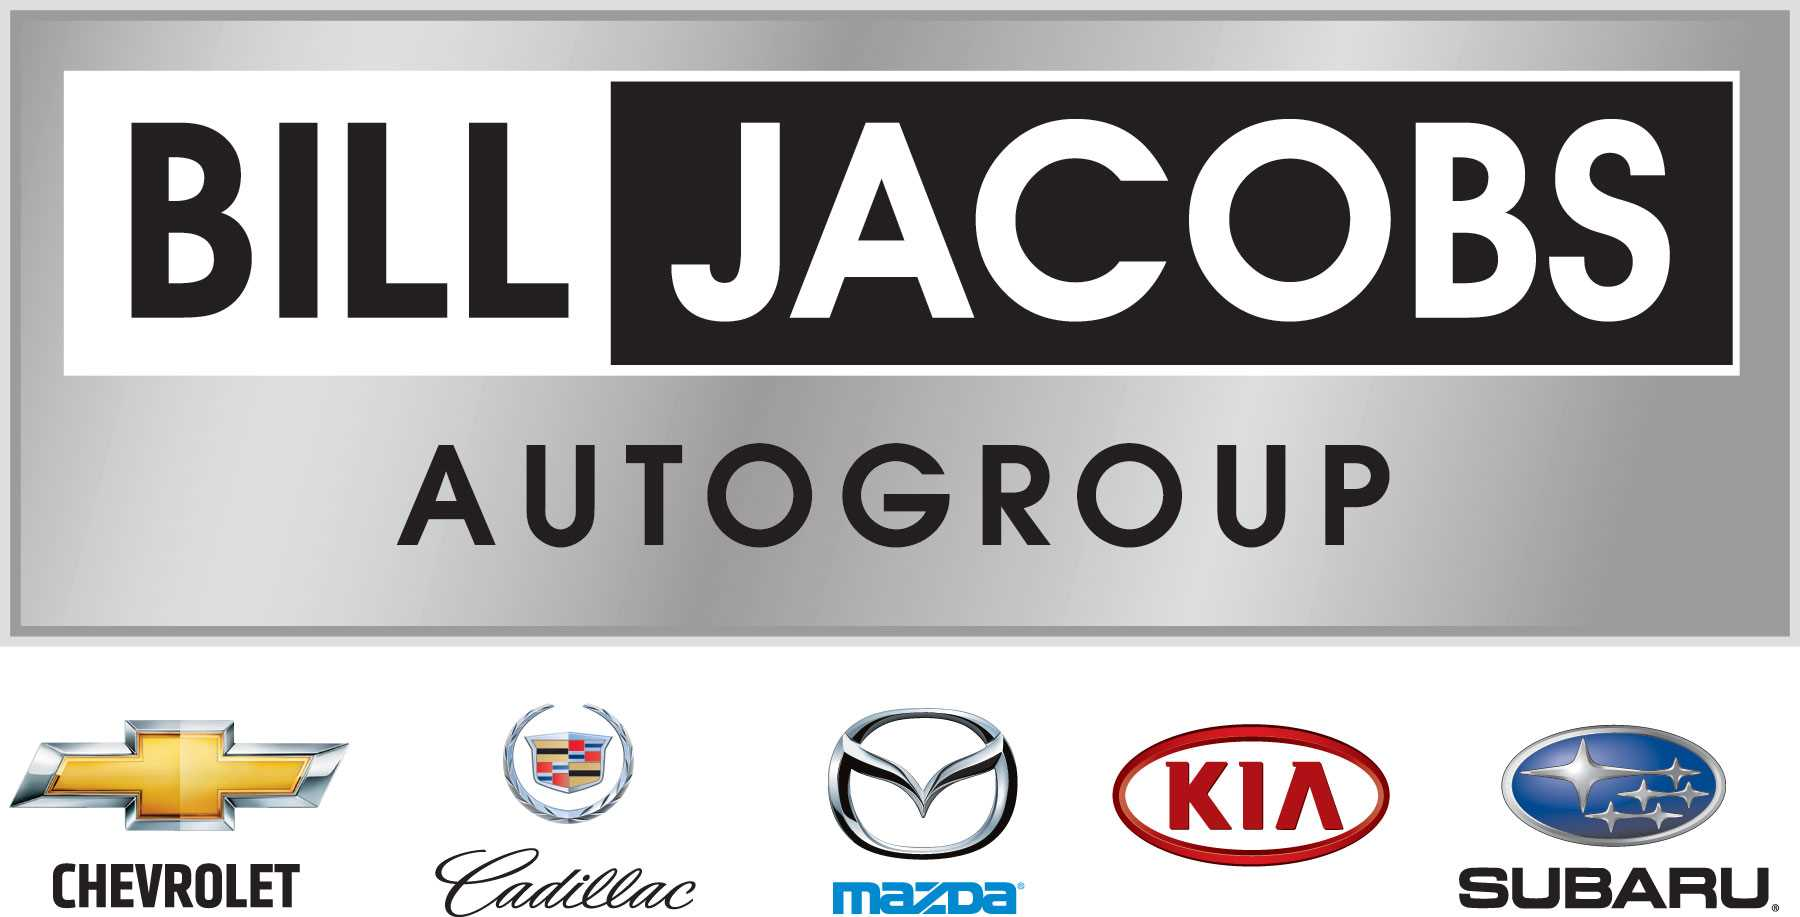 Bill Jacobs Autogroup